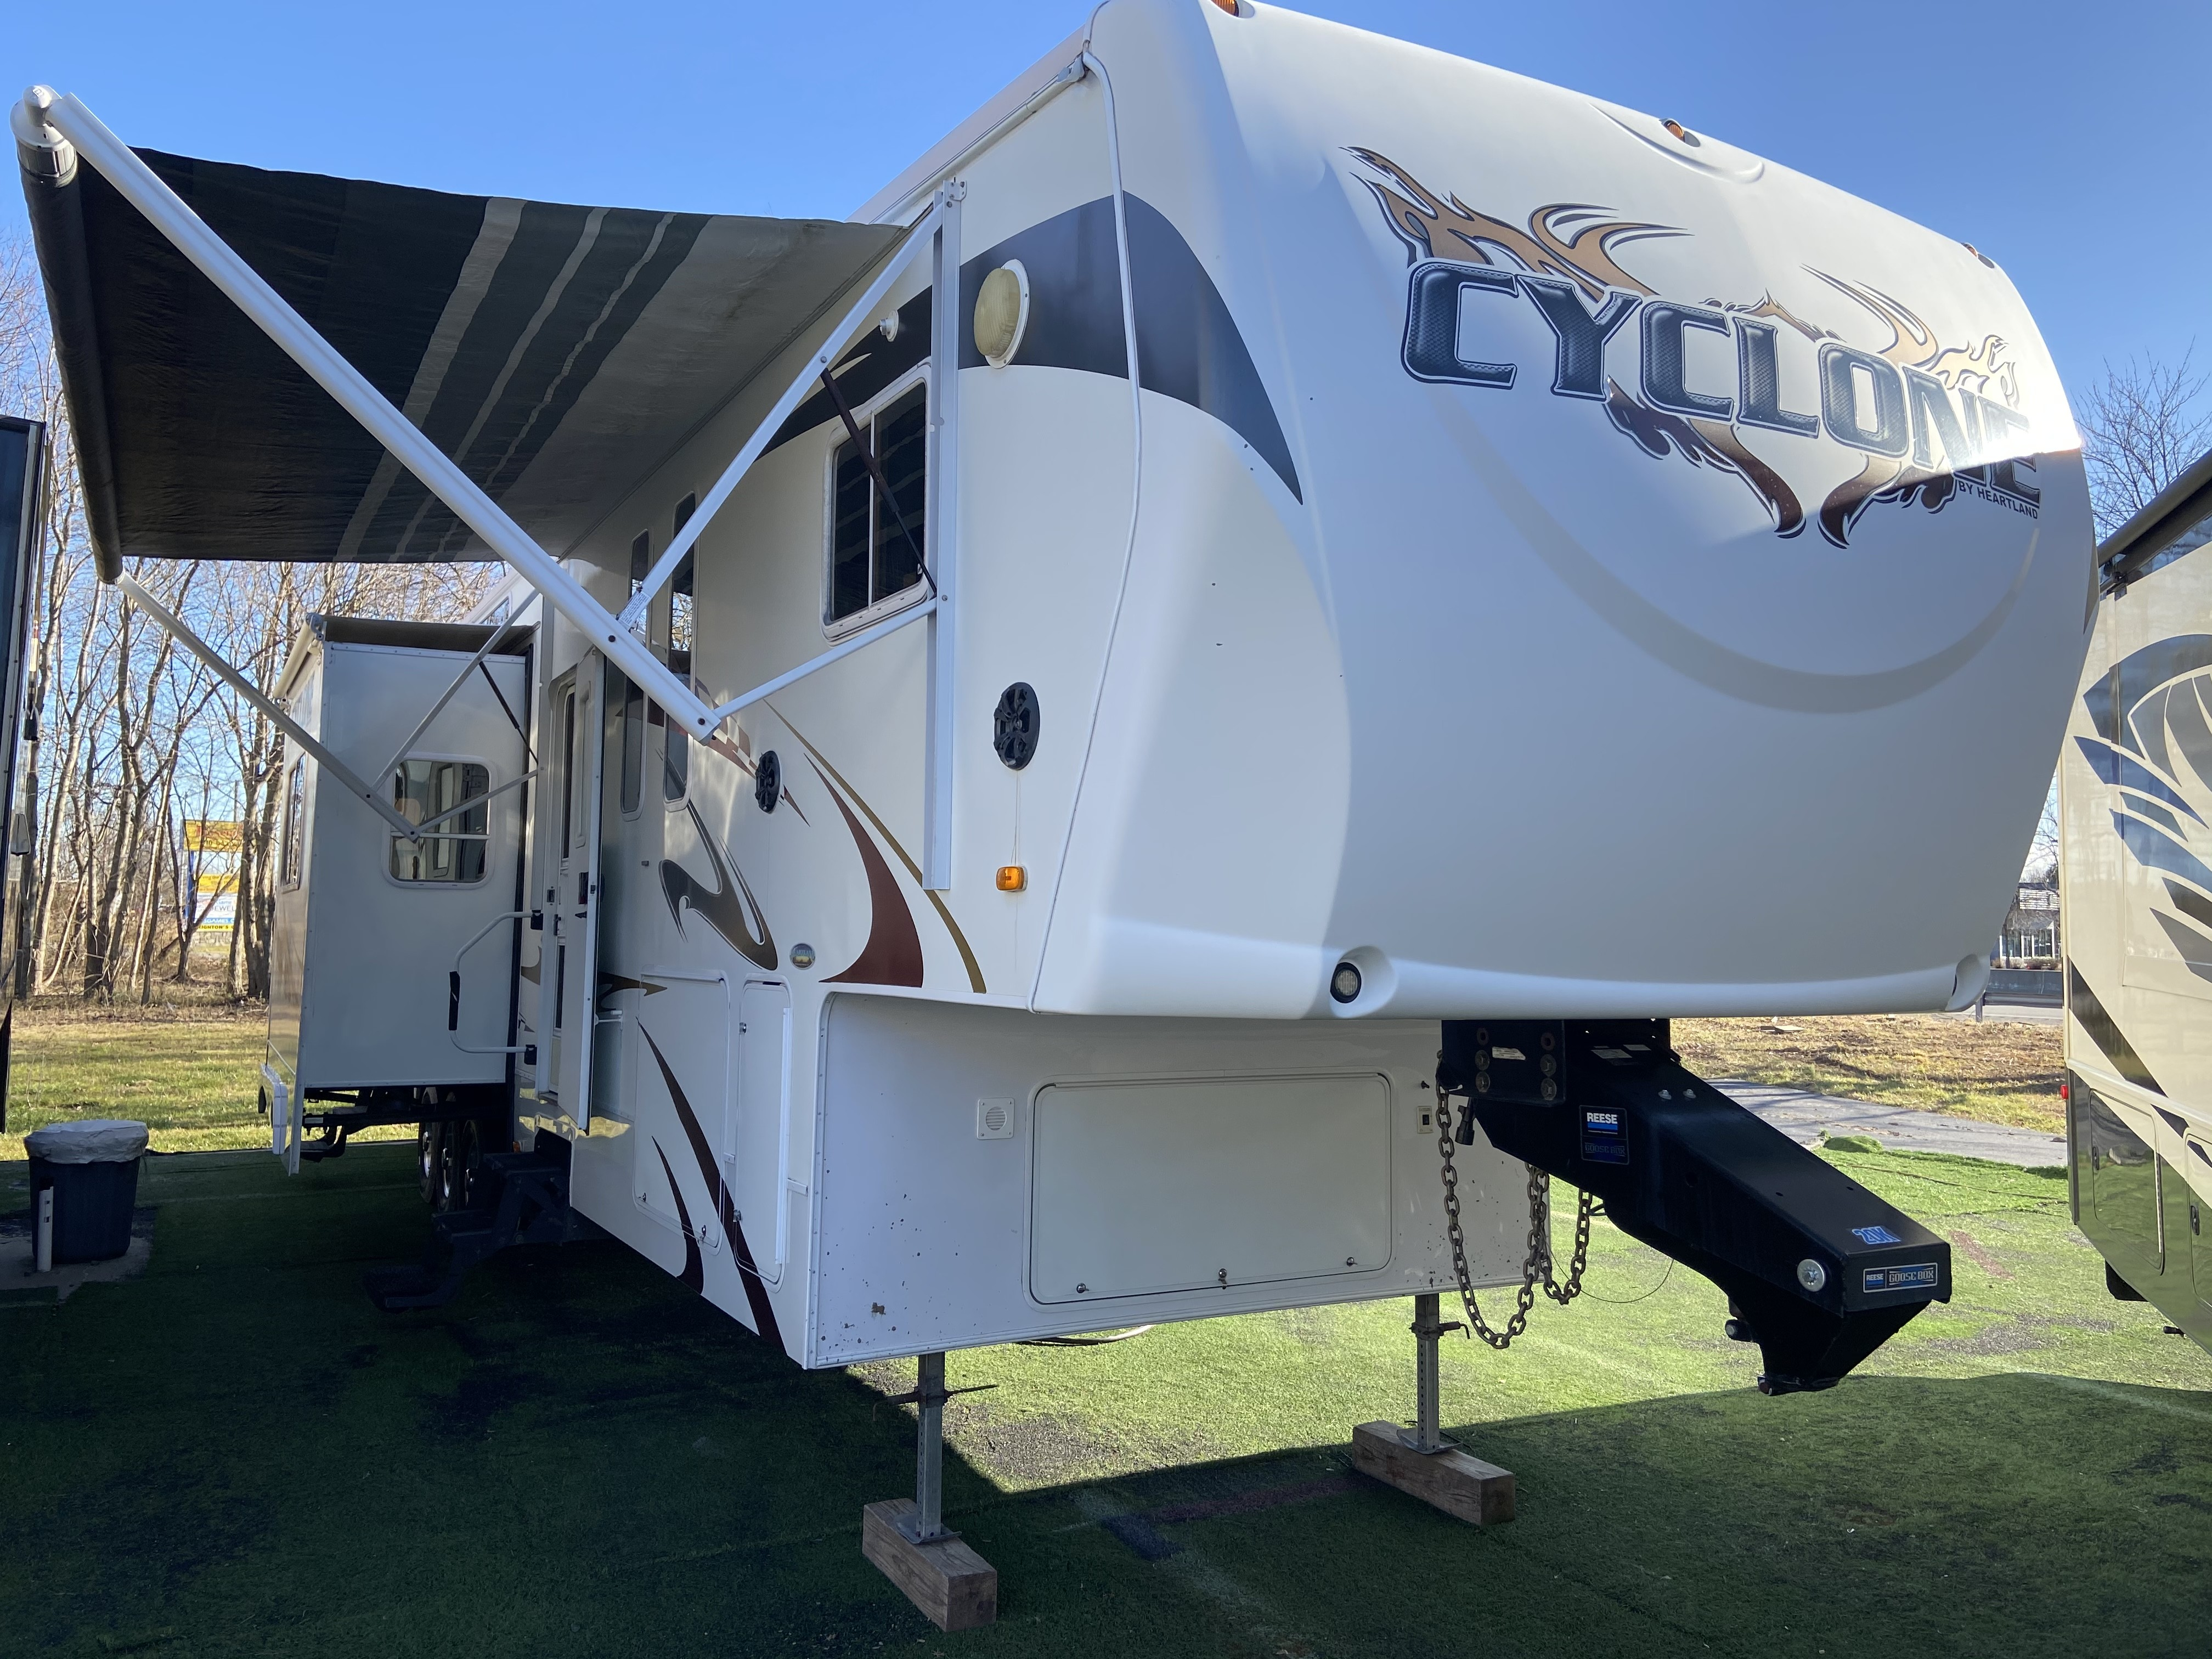 Used, 2009, Heartland, Cyclone M4012 Toy Hauler, Travel Trailers